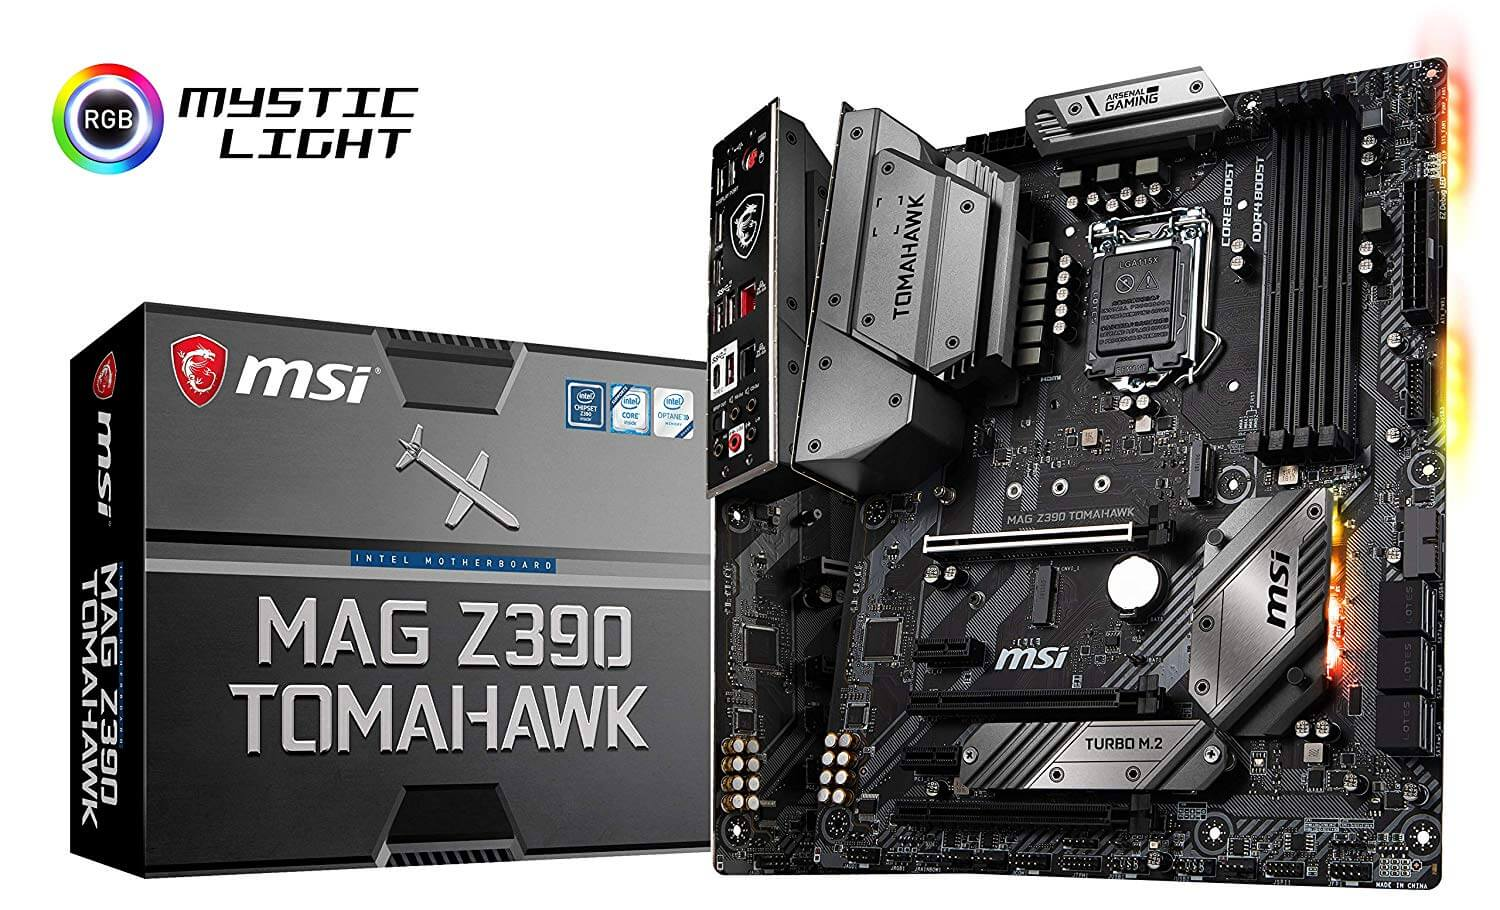 MSI Z390 TOMAHAWK, Onboard Video HDMI,  X-Fire, GB LAN, USB 3.1 Gen2,USB-C